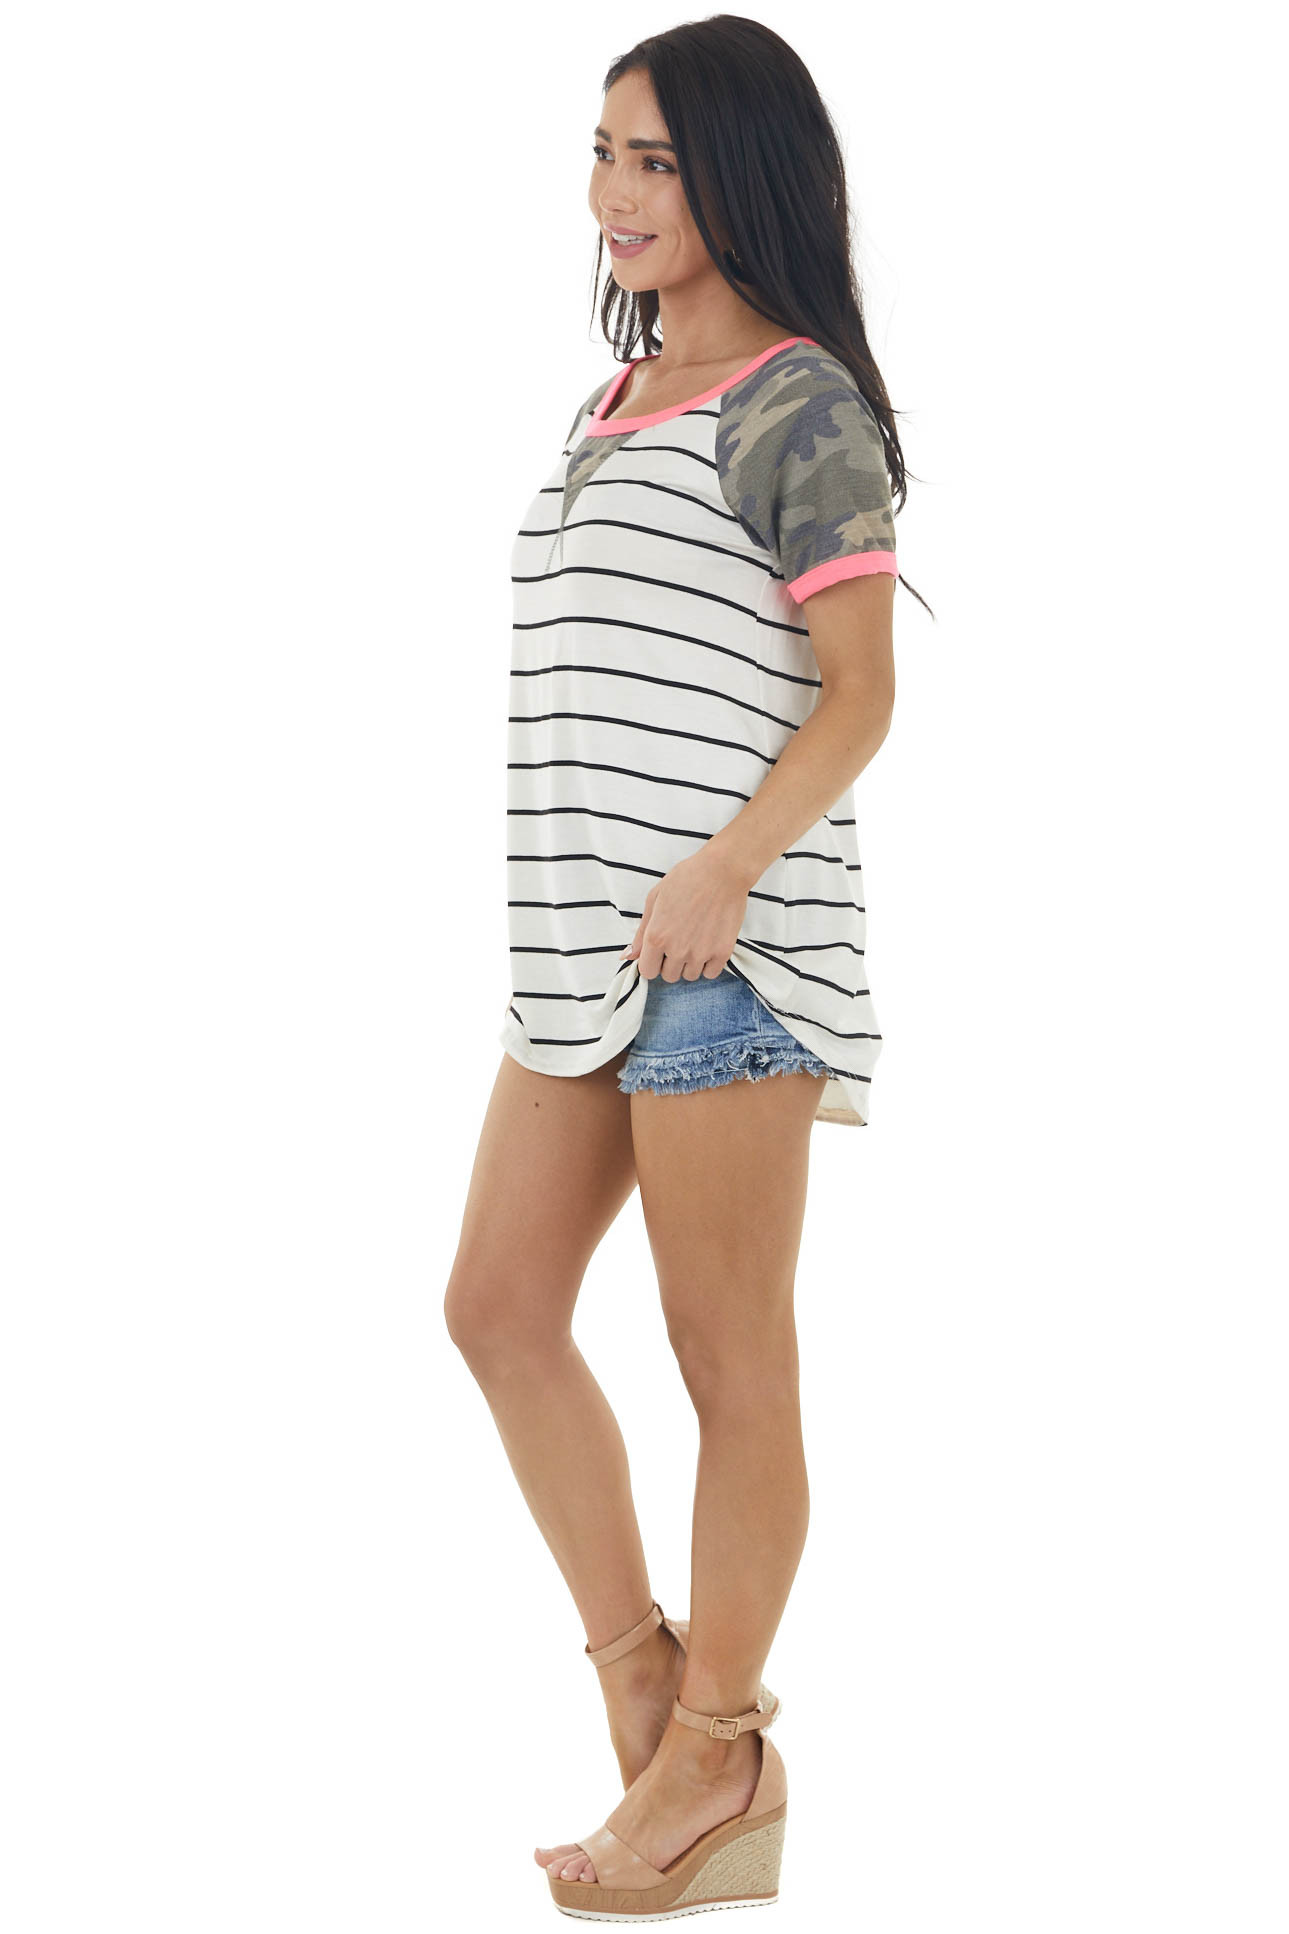 Ivory and Black Striped Top with Camo and Neon Details